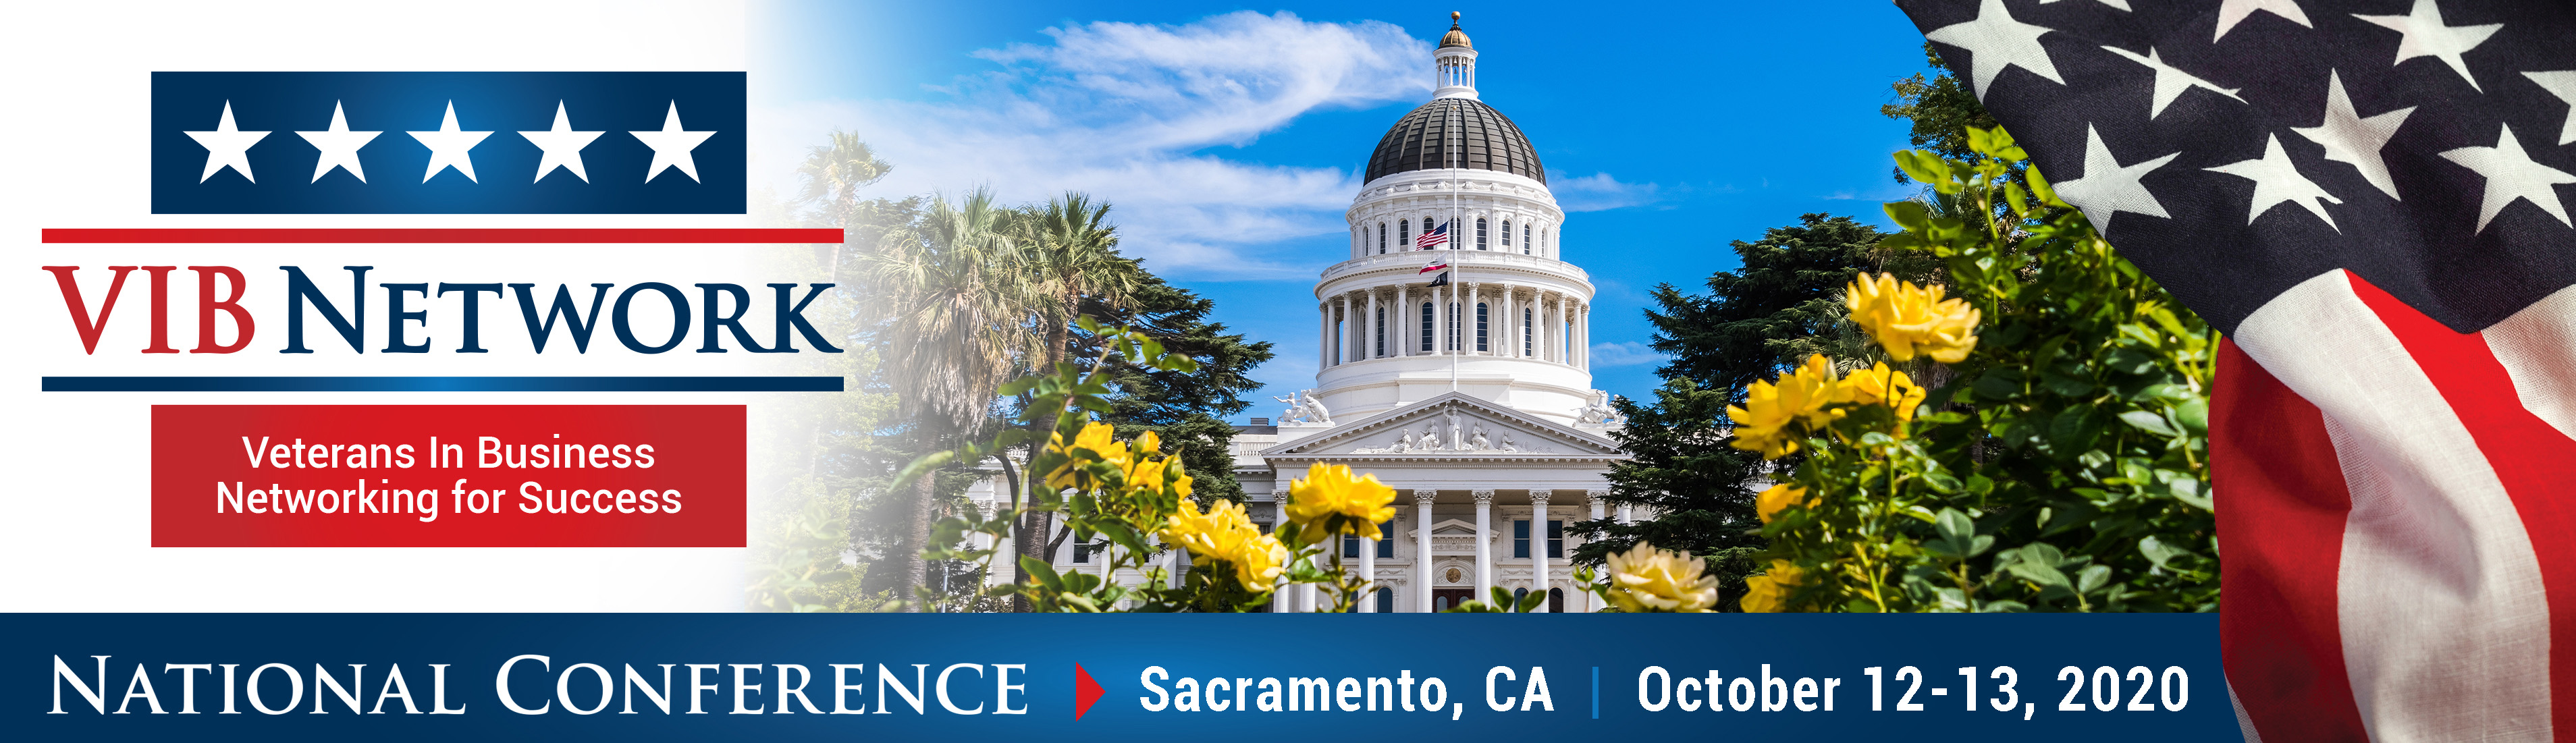 2019 Veterans In Business Network National Conference - San Diego